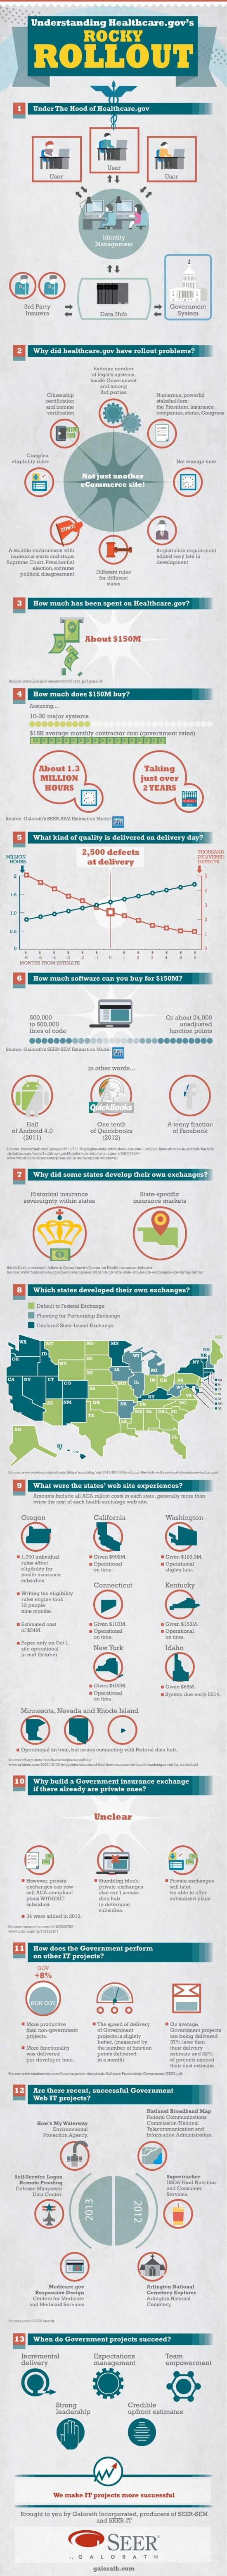 Understanding Healthcare.gov's Rocky Rollout infographic